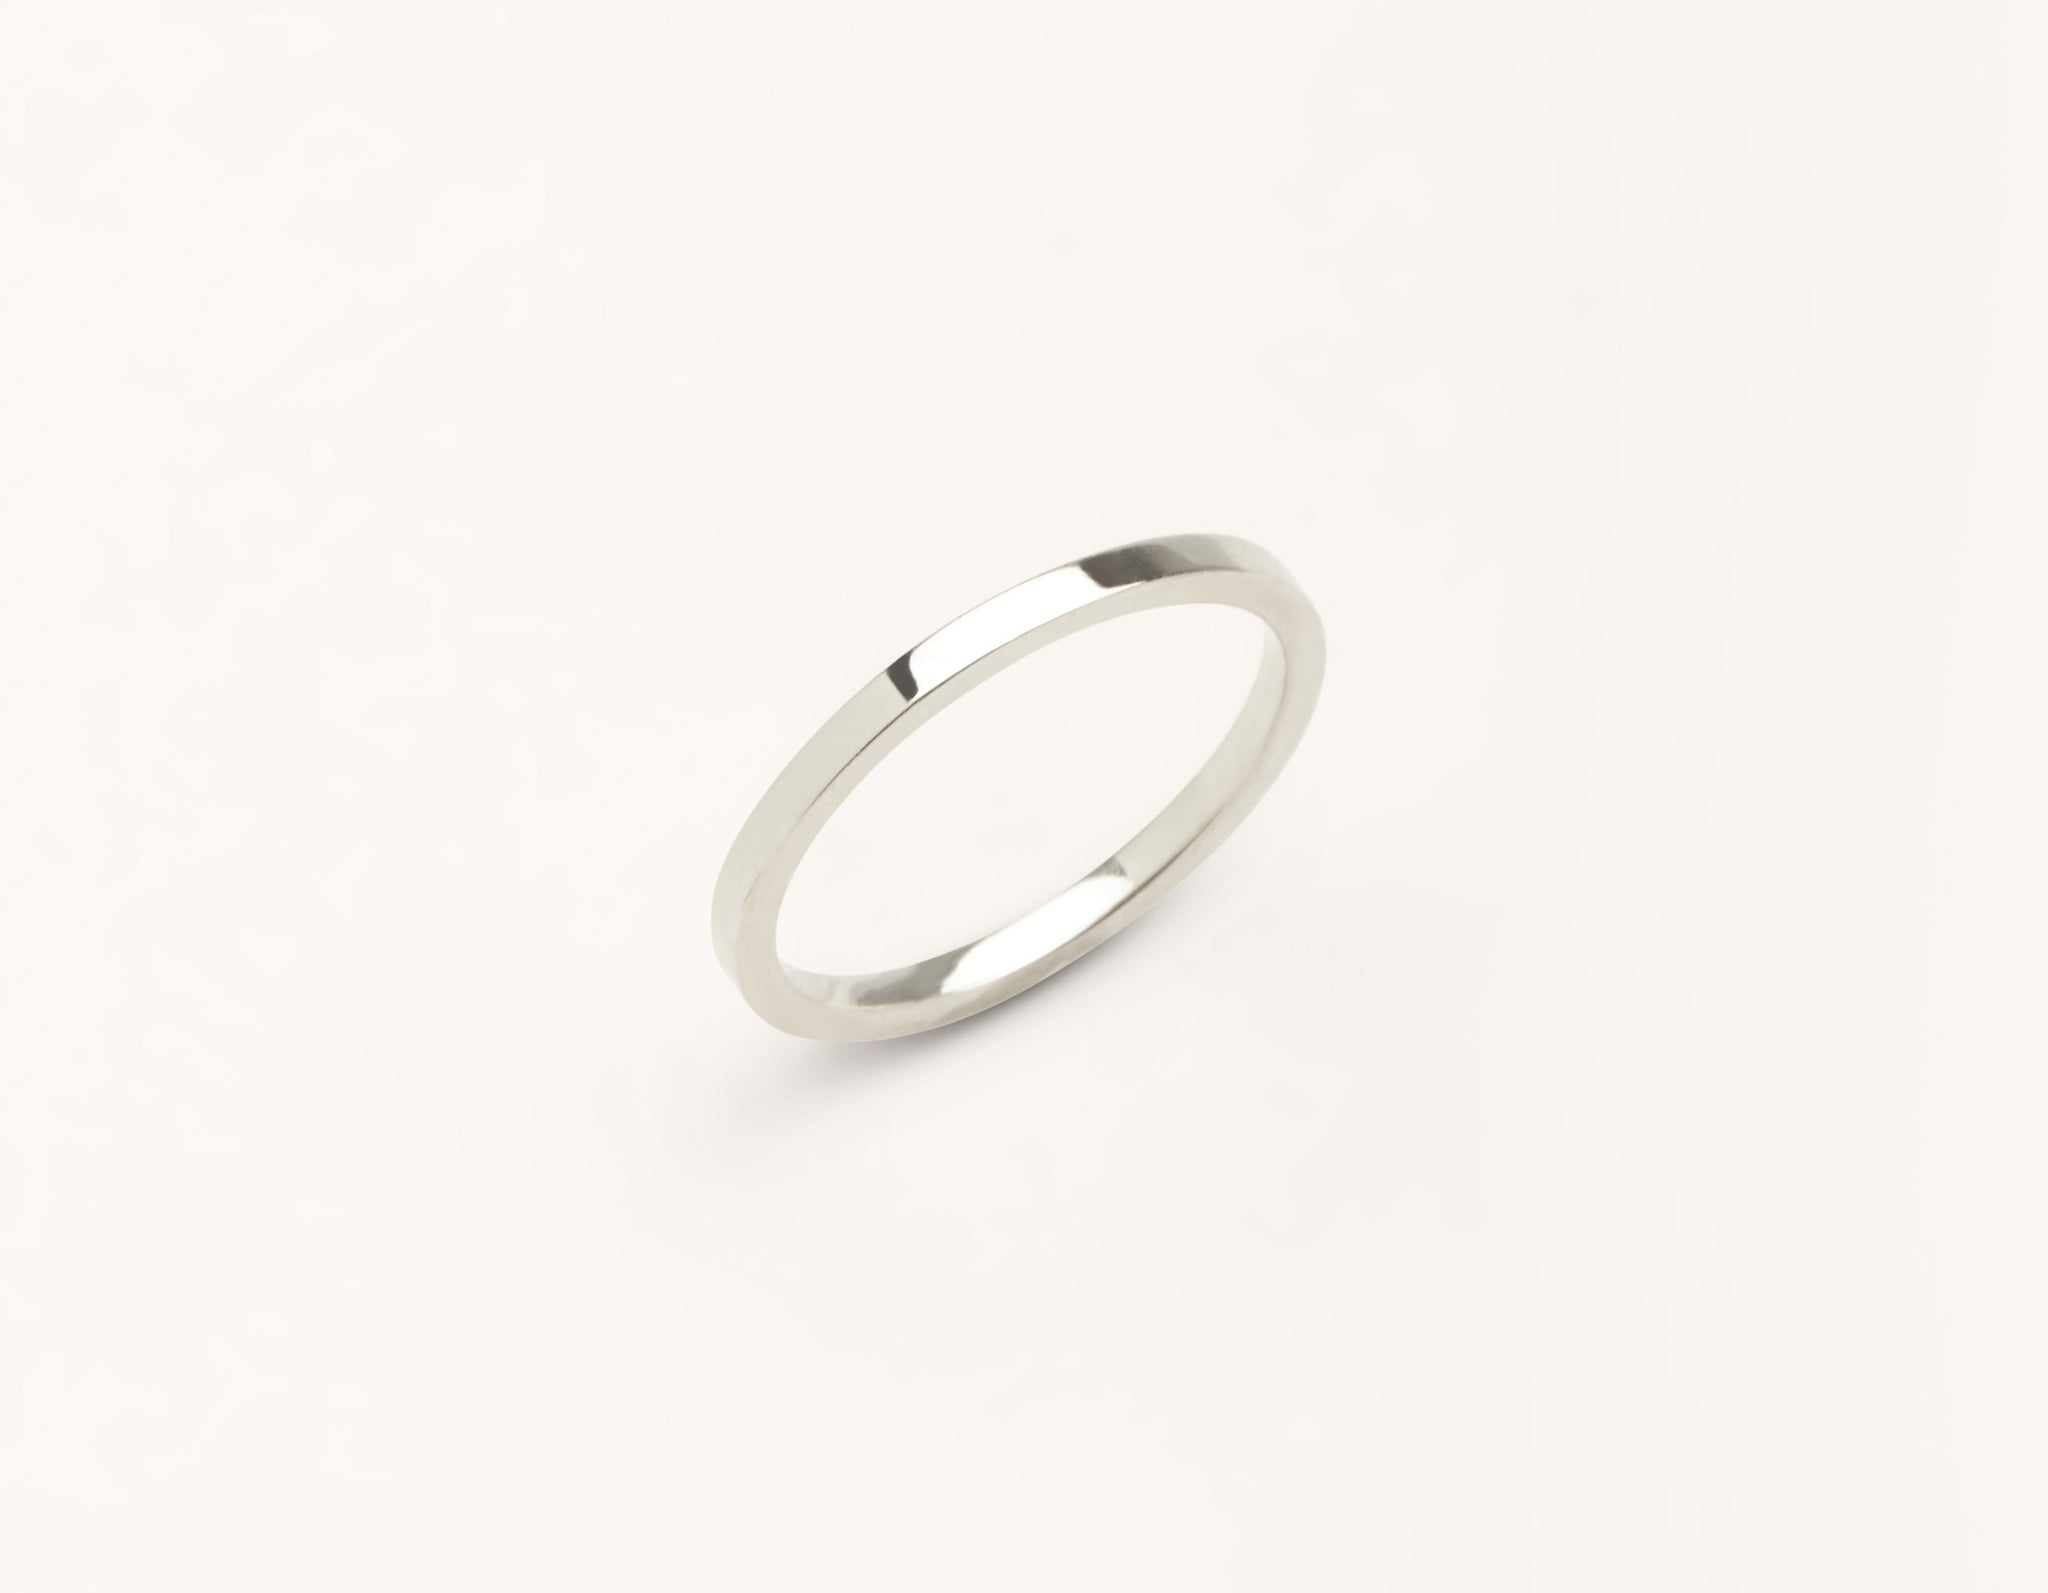 Minimalist 18k solid white gold 1.5 mm Flat Wedding Band for men and women Vrai and Oro